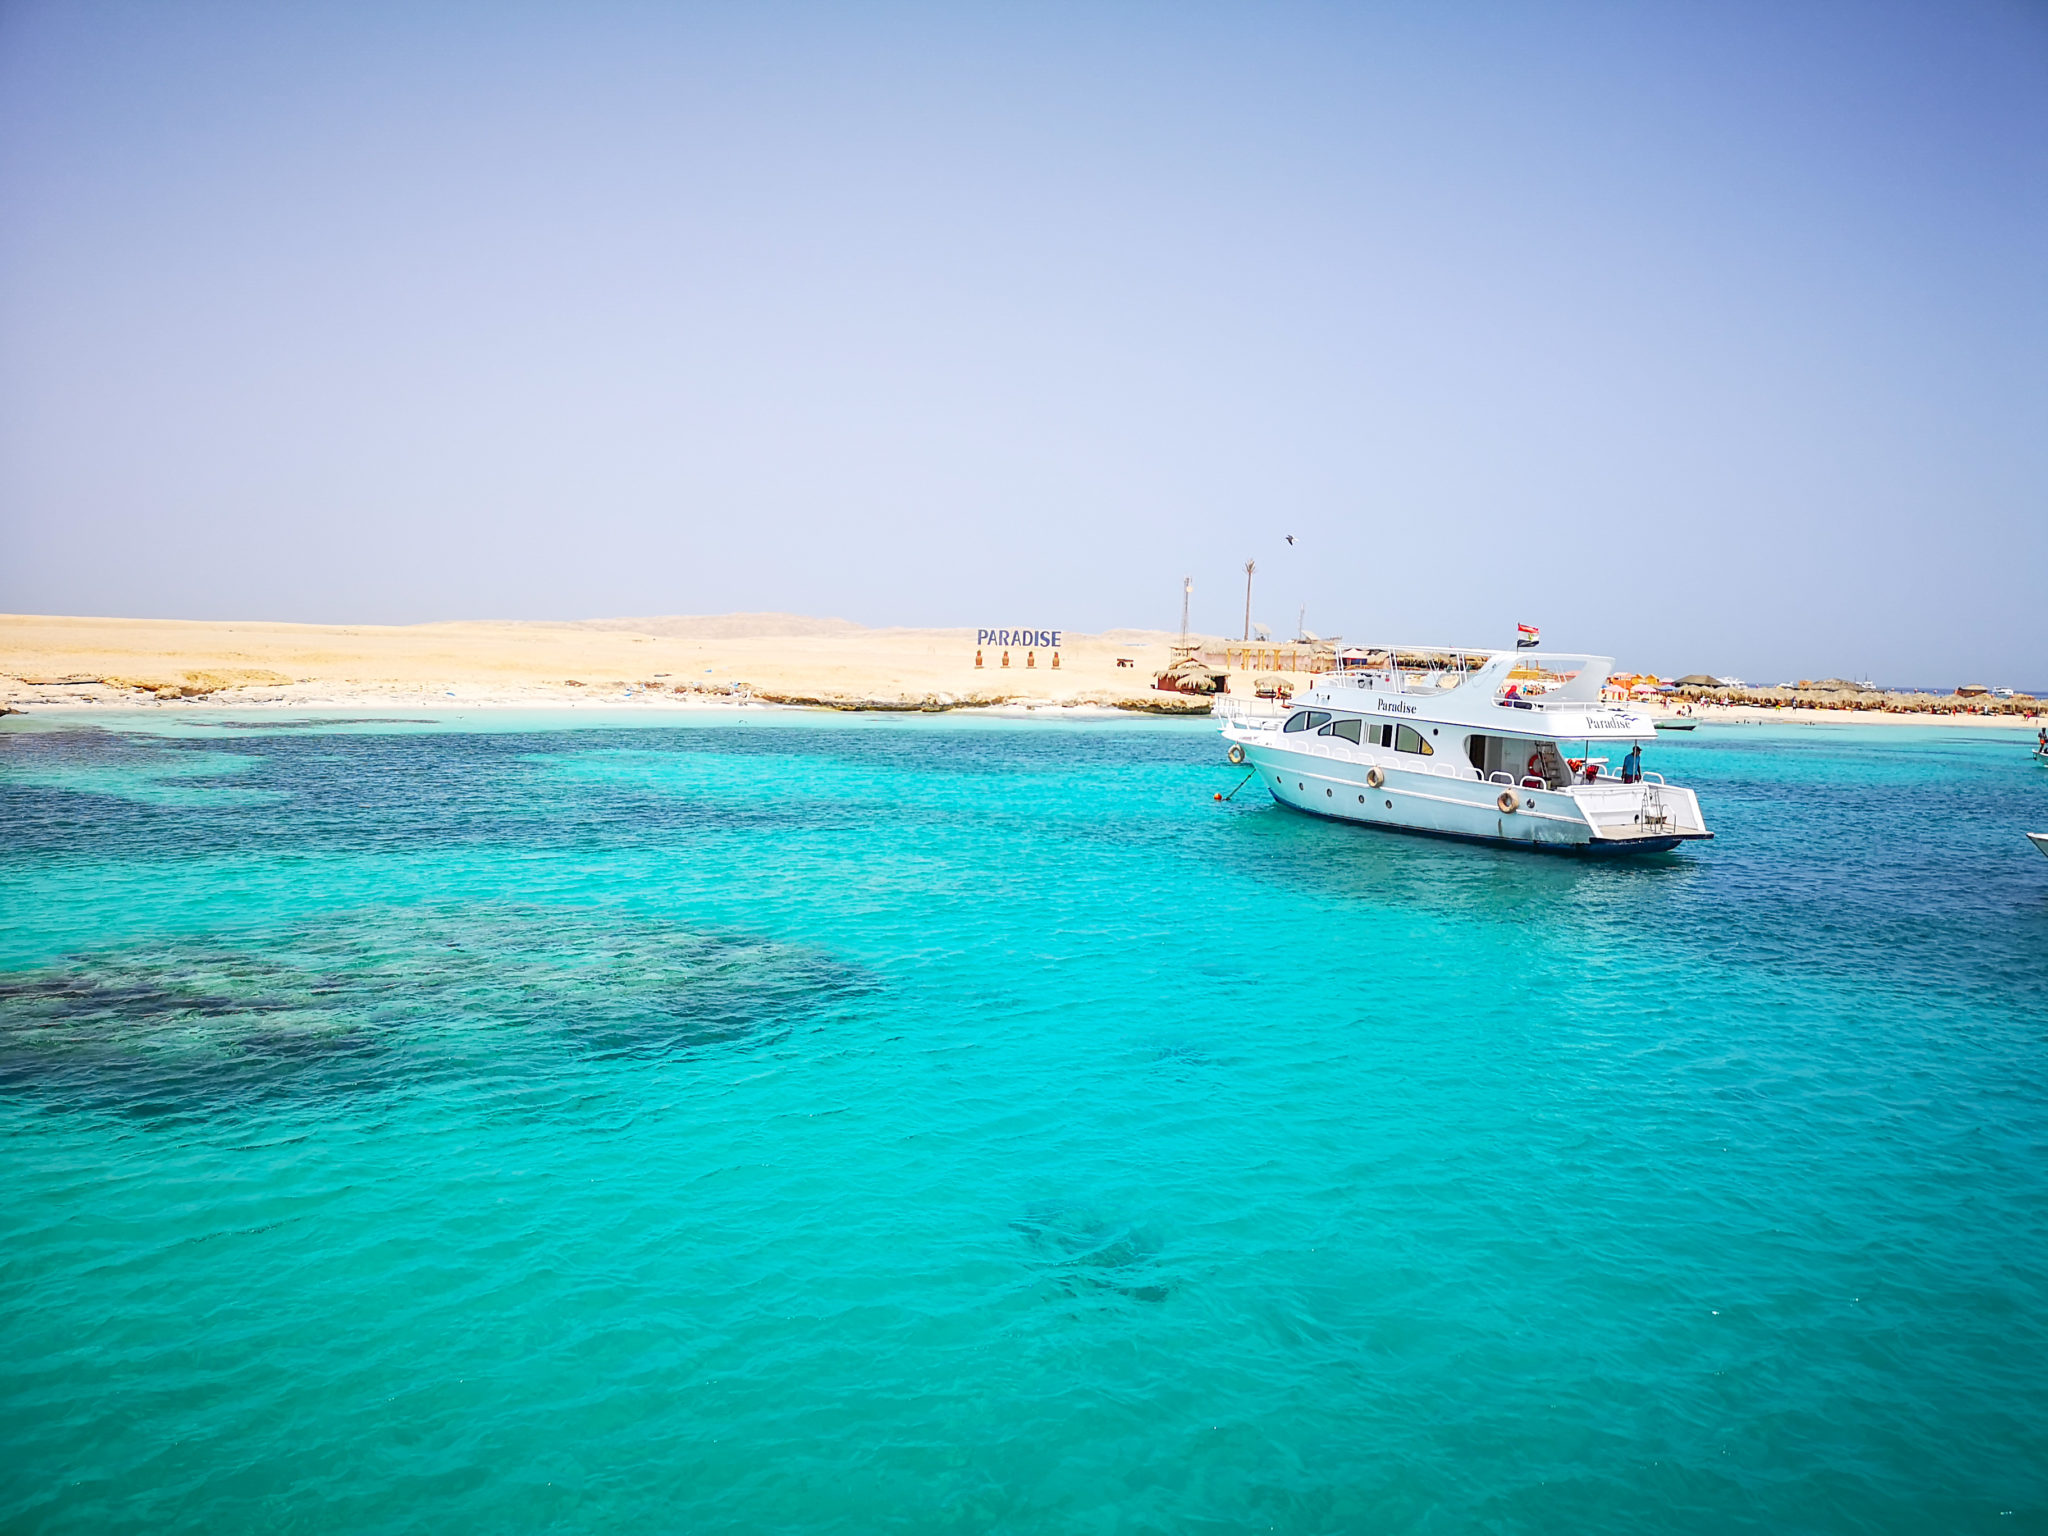 Egypt travel guide sea itinerary giftun island paradise beach